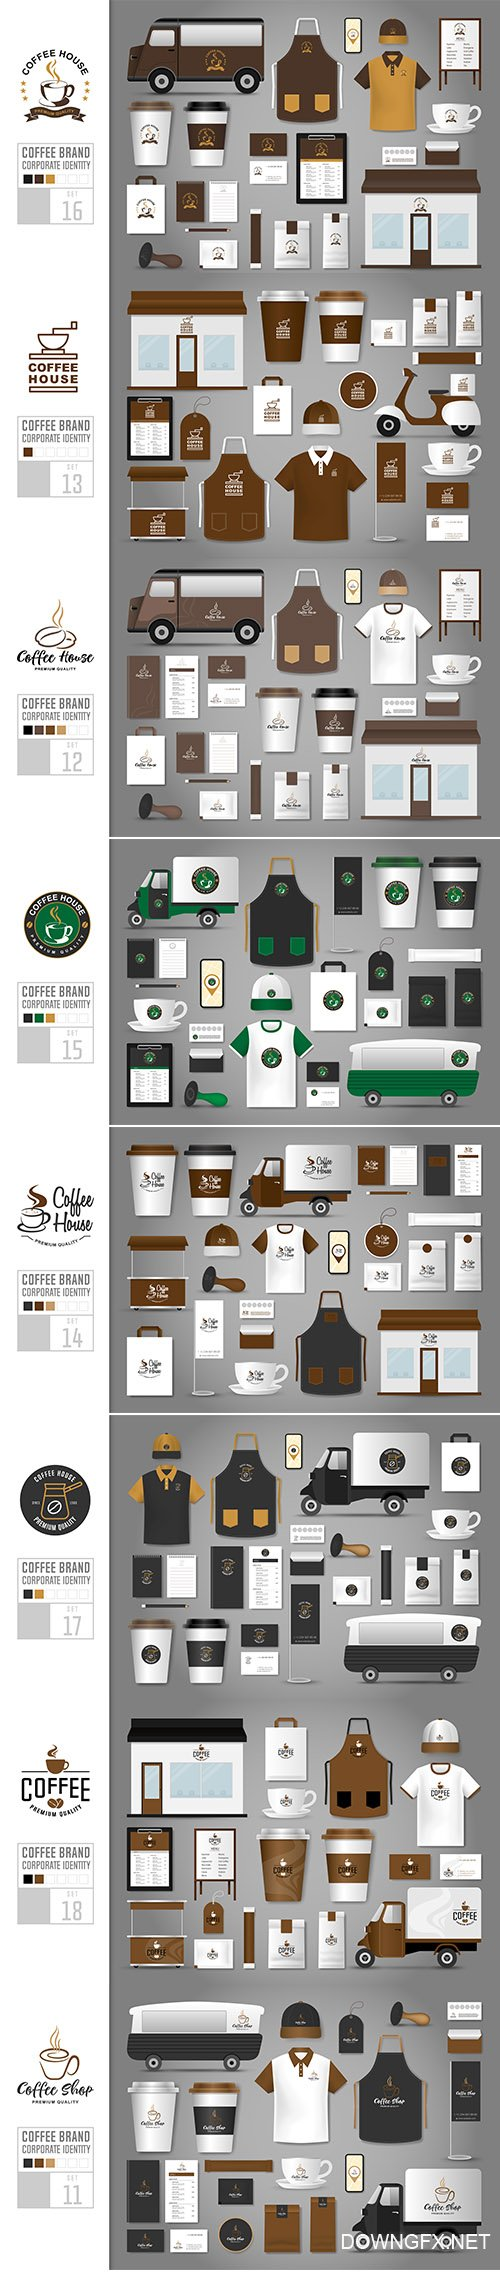 Corporate Identity Template Coffee Shop Set